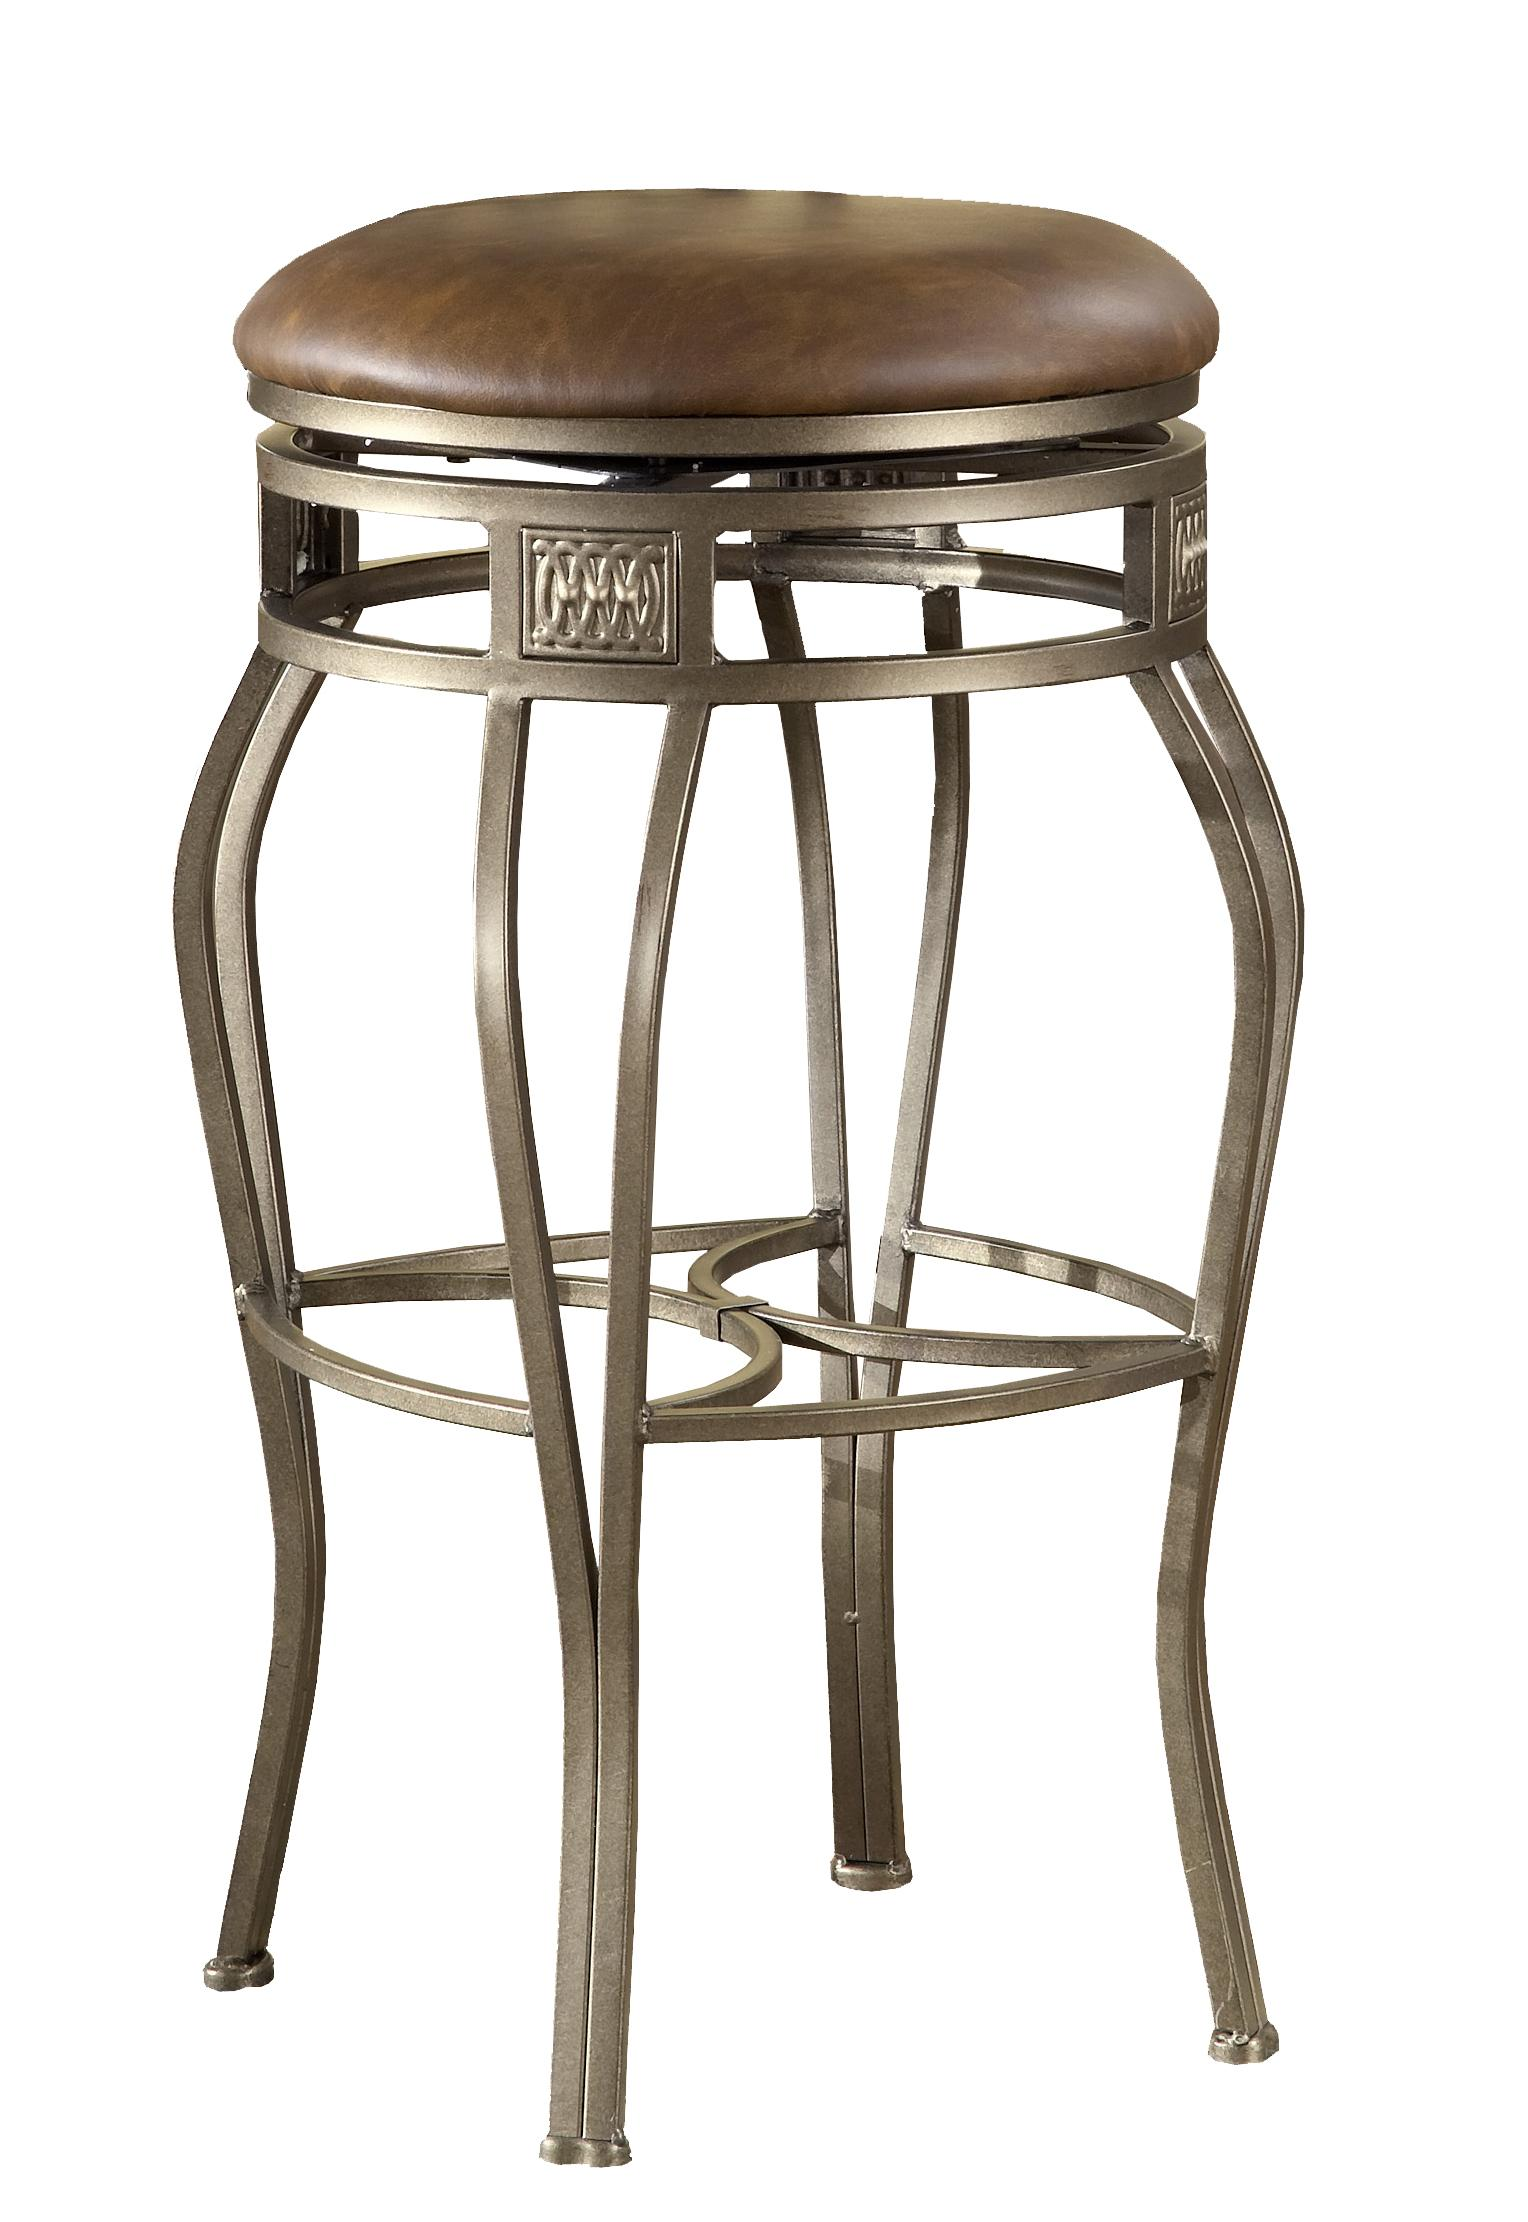 Hillsdale Backless Bar Stools 30 Quot Backless Montello Swivel